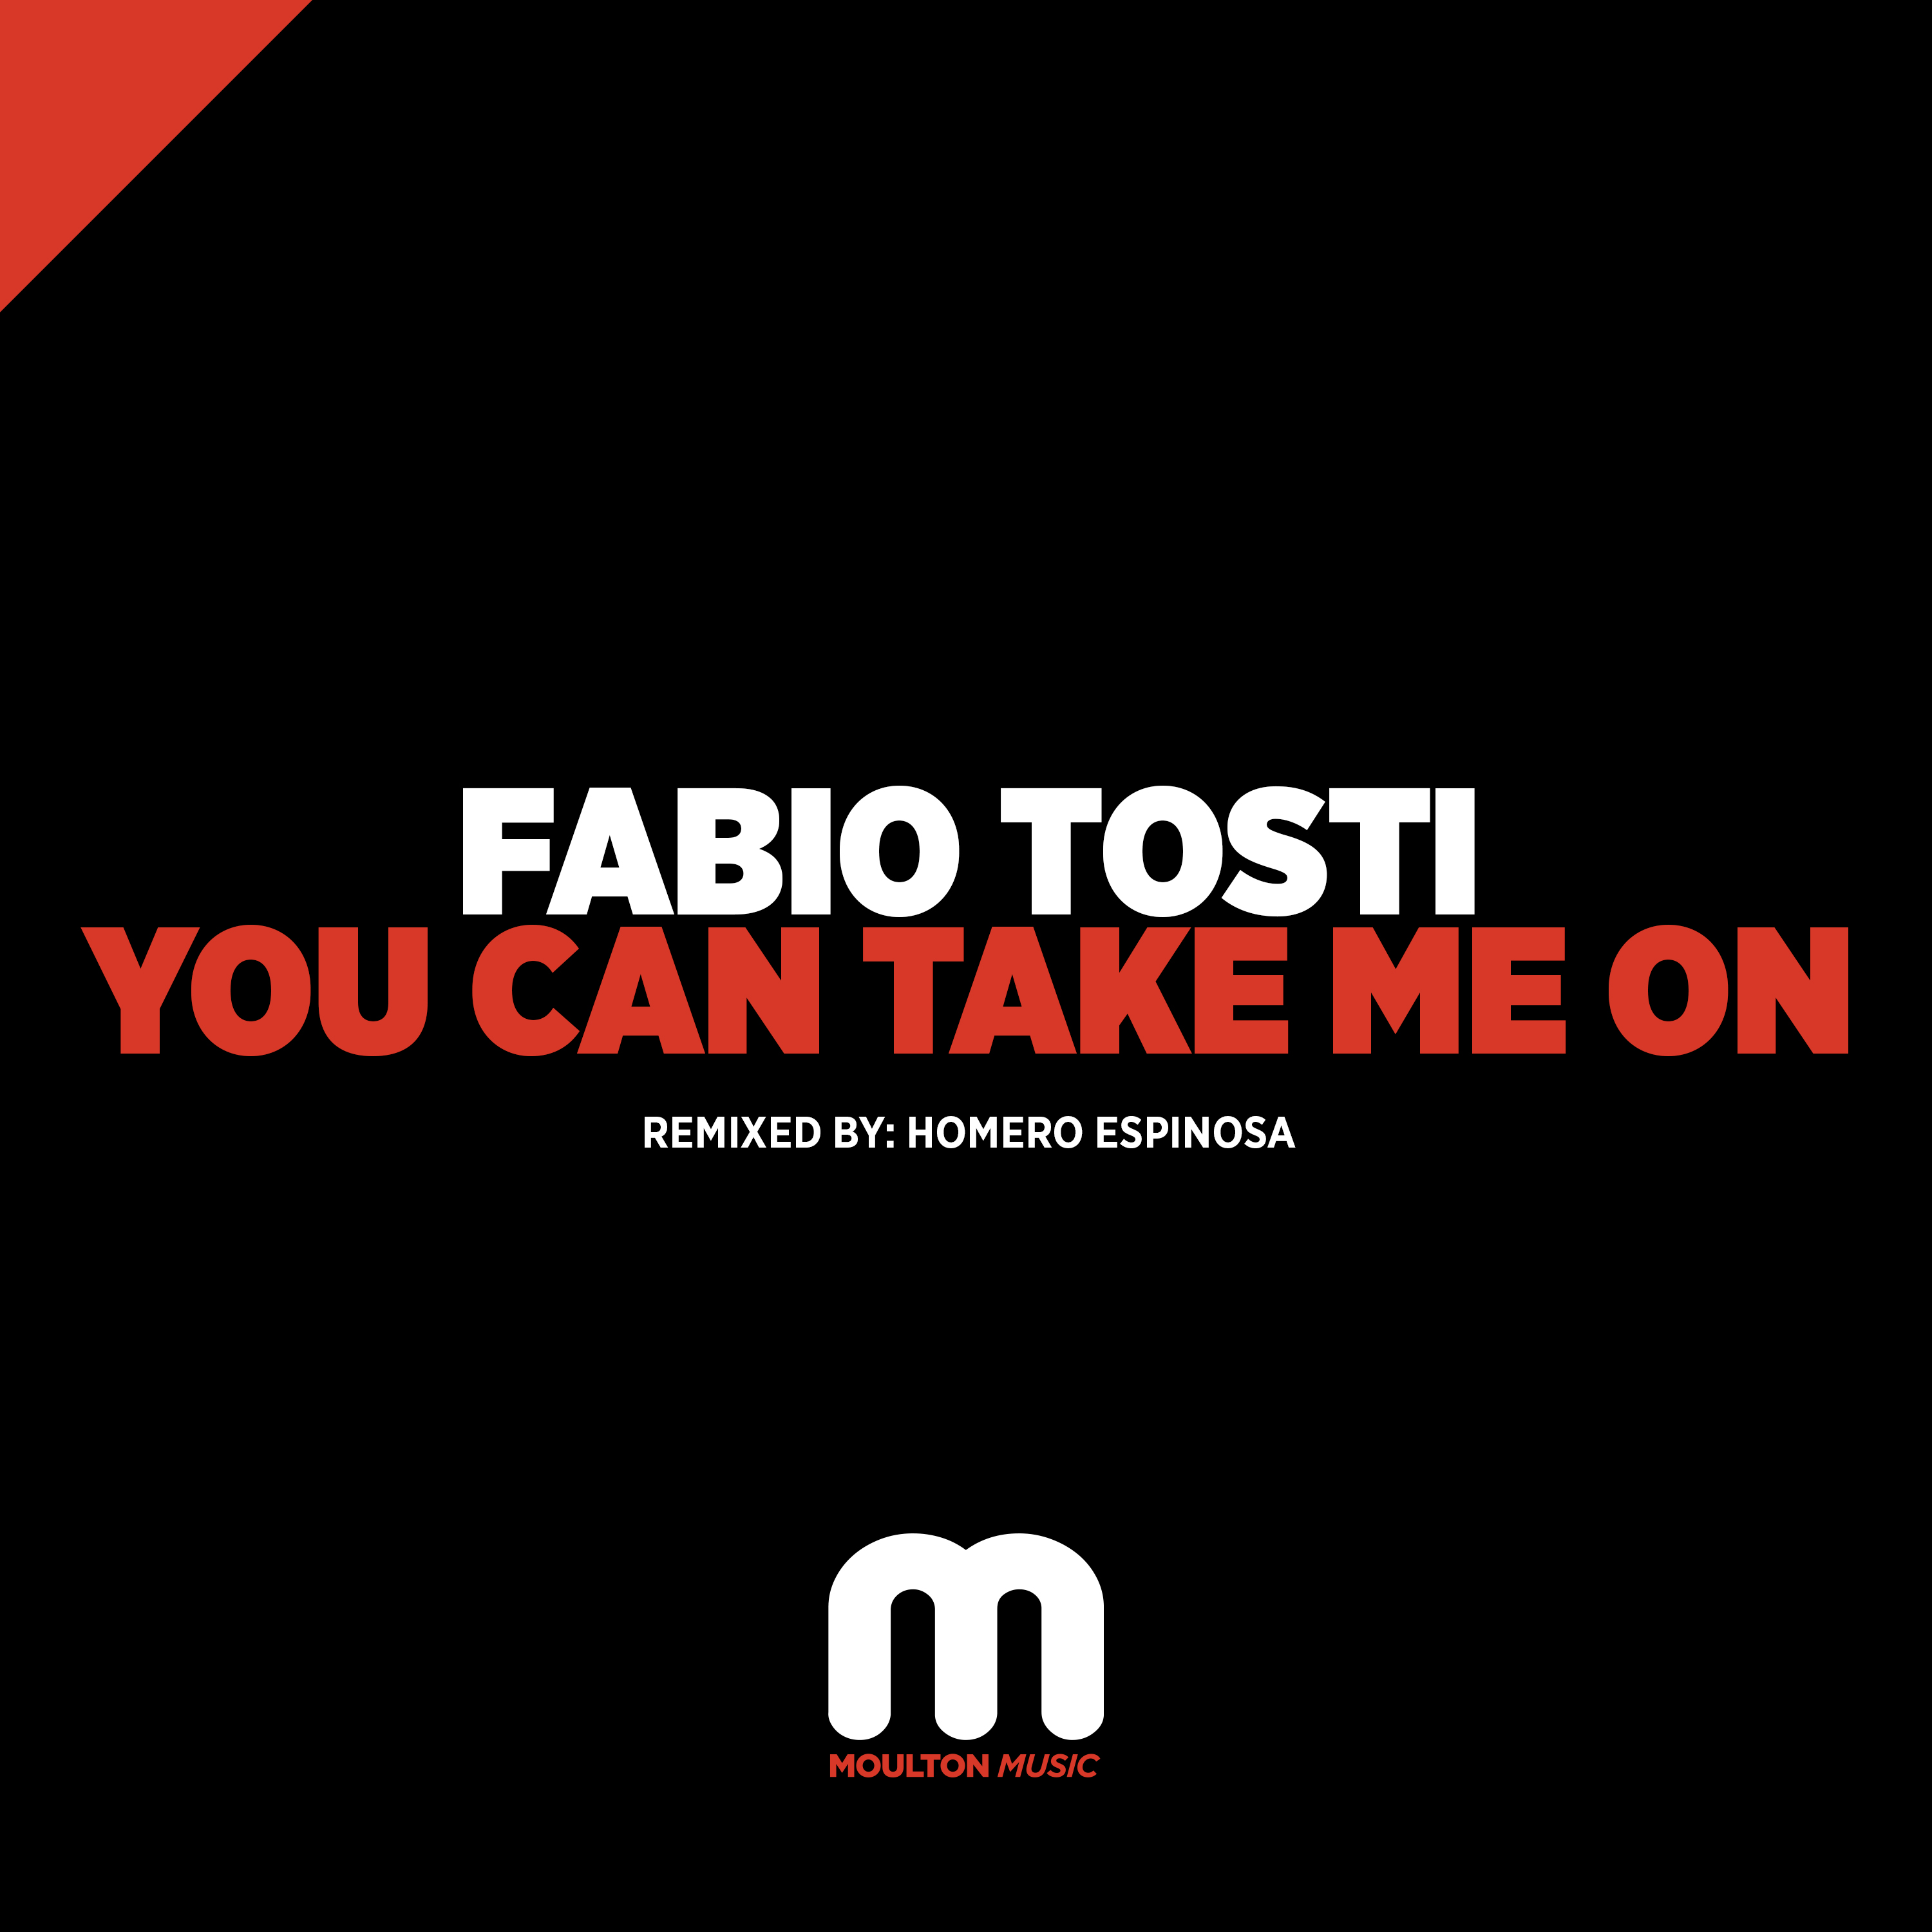 fabio-tosti-you-can-take-me-on